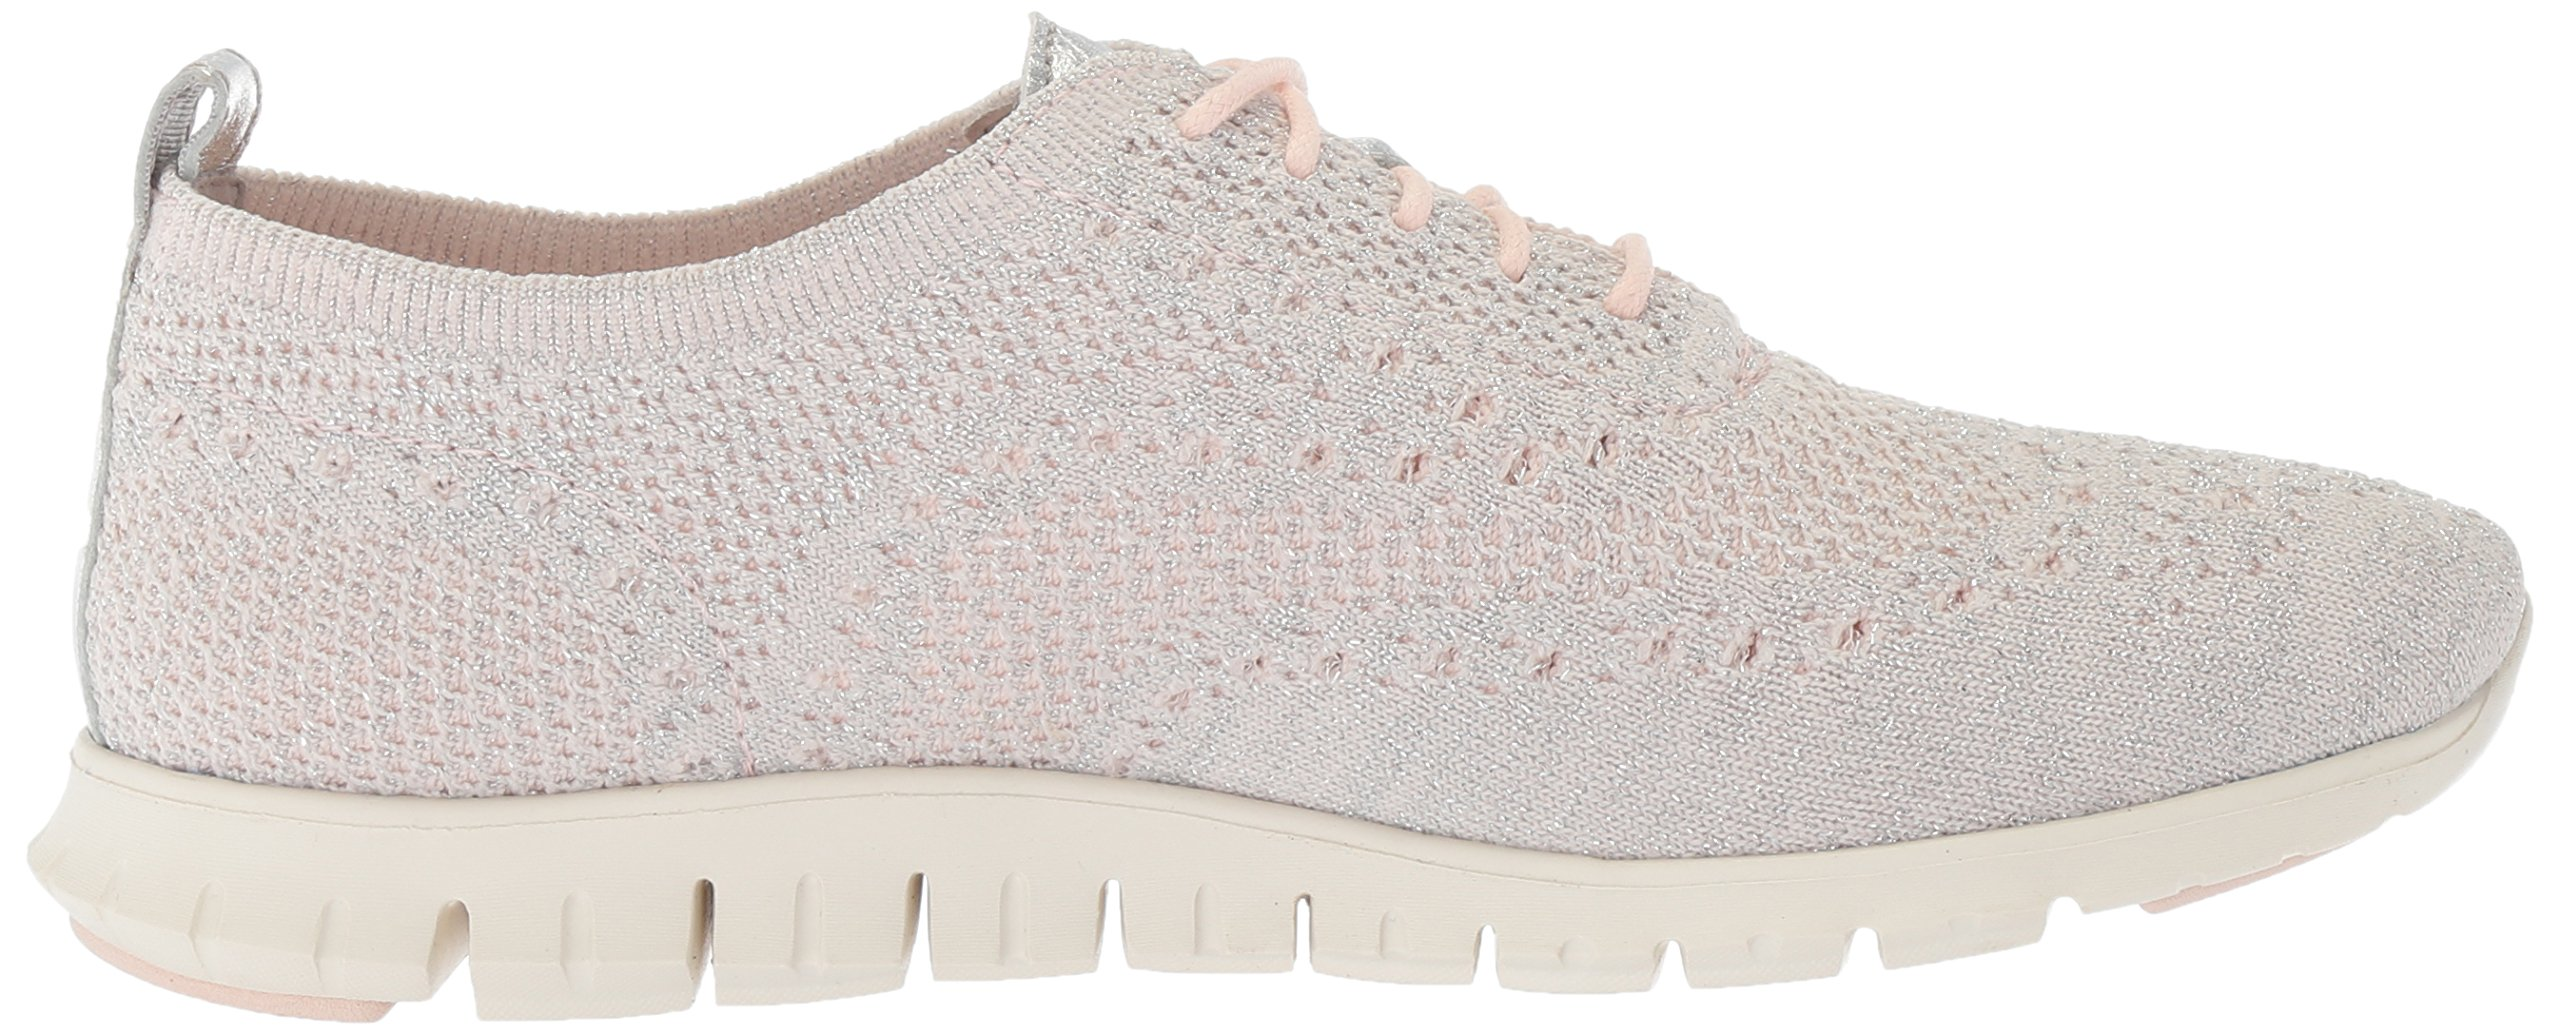 Cole Haan Women's Zerogrand Stitchlite Oxford, Peach Blush, 8.5 B US by Cole Haan (Image #7)